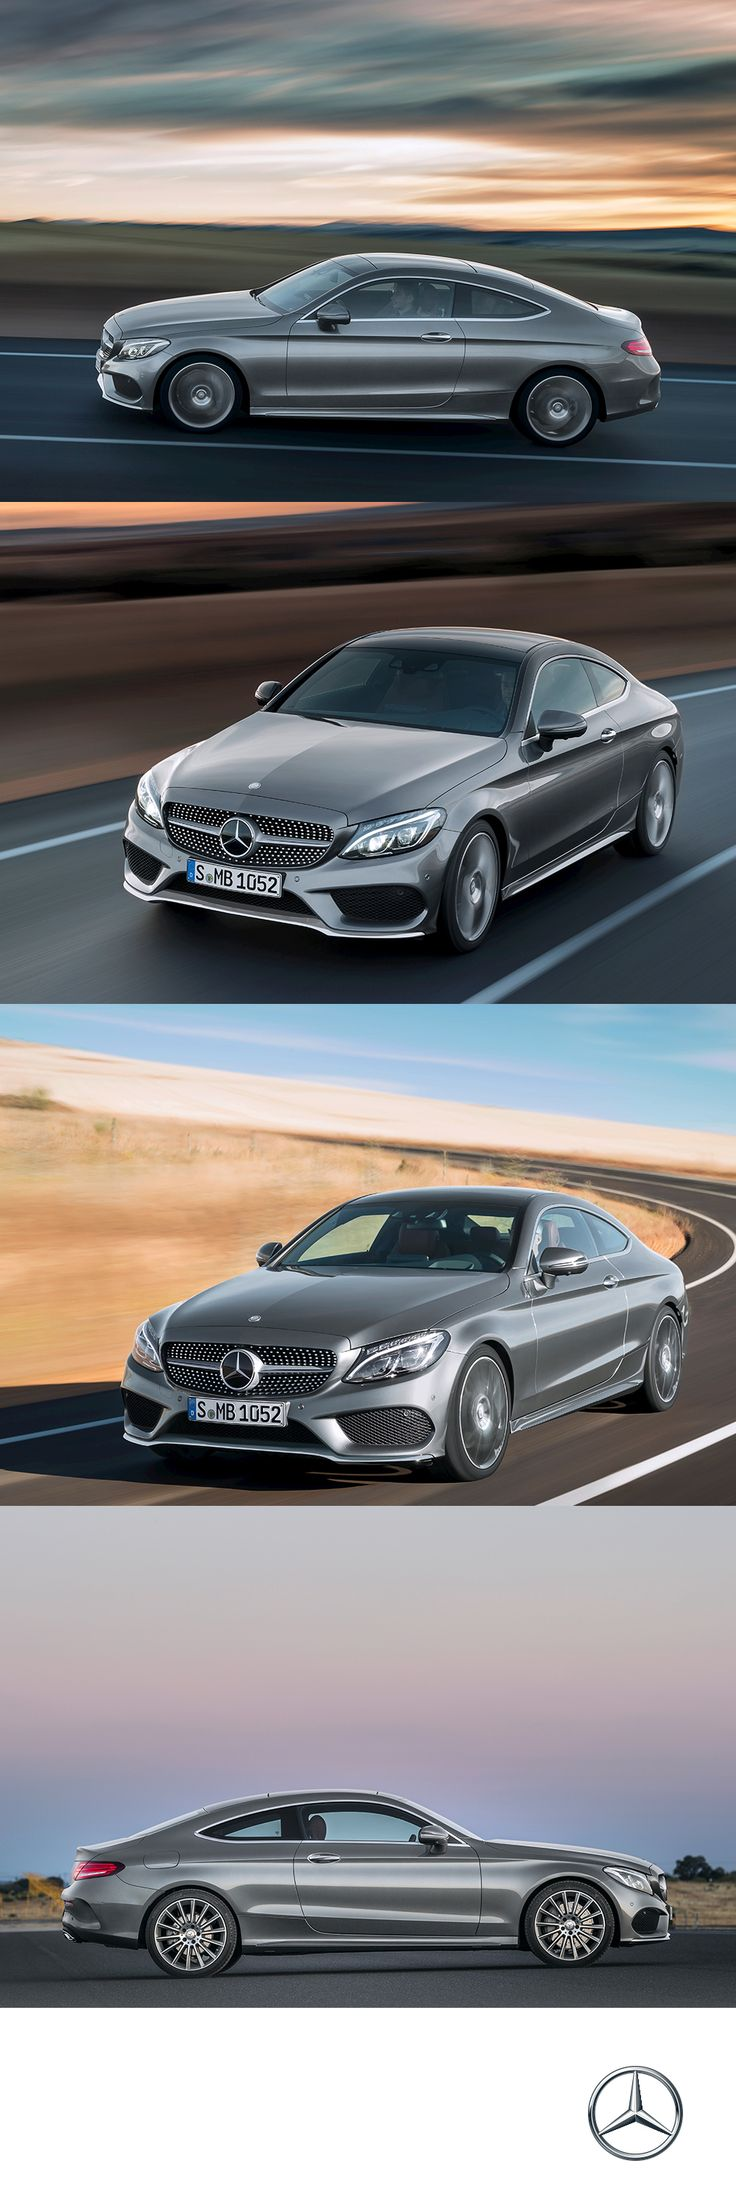 With a host of innovative technologies and irresistible allure, the all-new 2017 C-Class Coupe arrives next spring as a vehicle that's both state-of-the art as well as a work of art. It's signature style is suited for sport with 241-hp that delivers 273 lb-ft of torque.